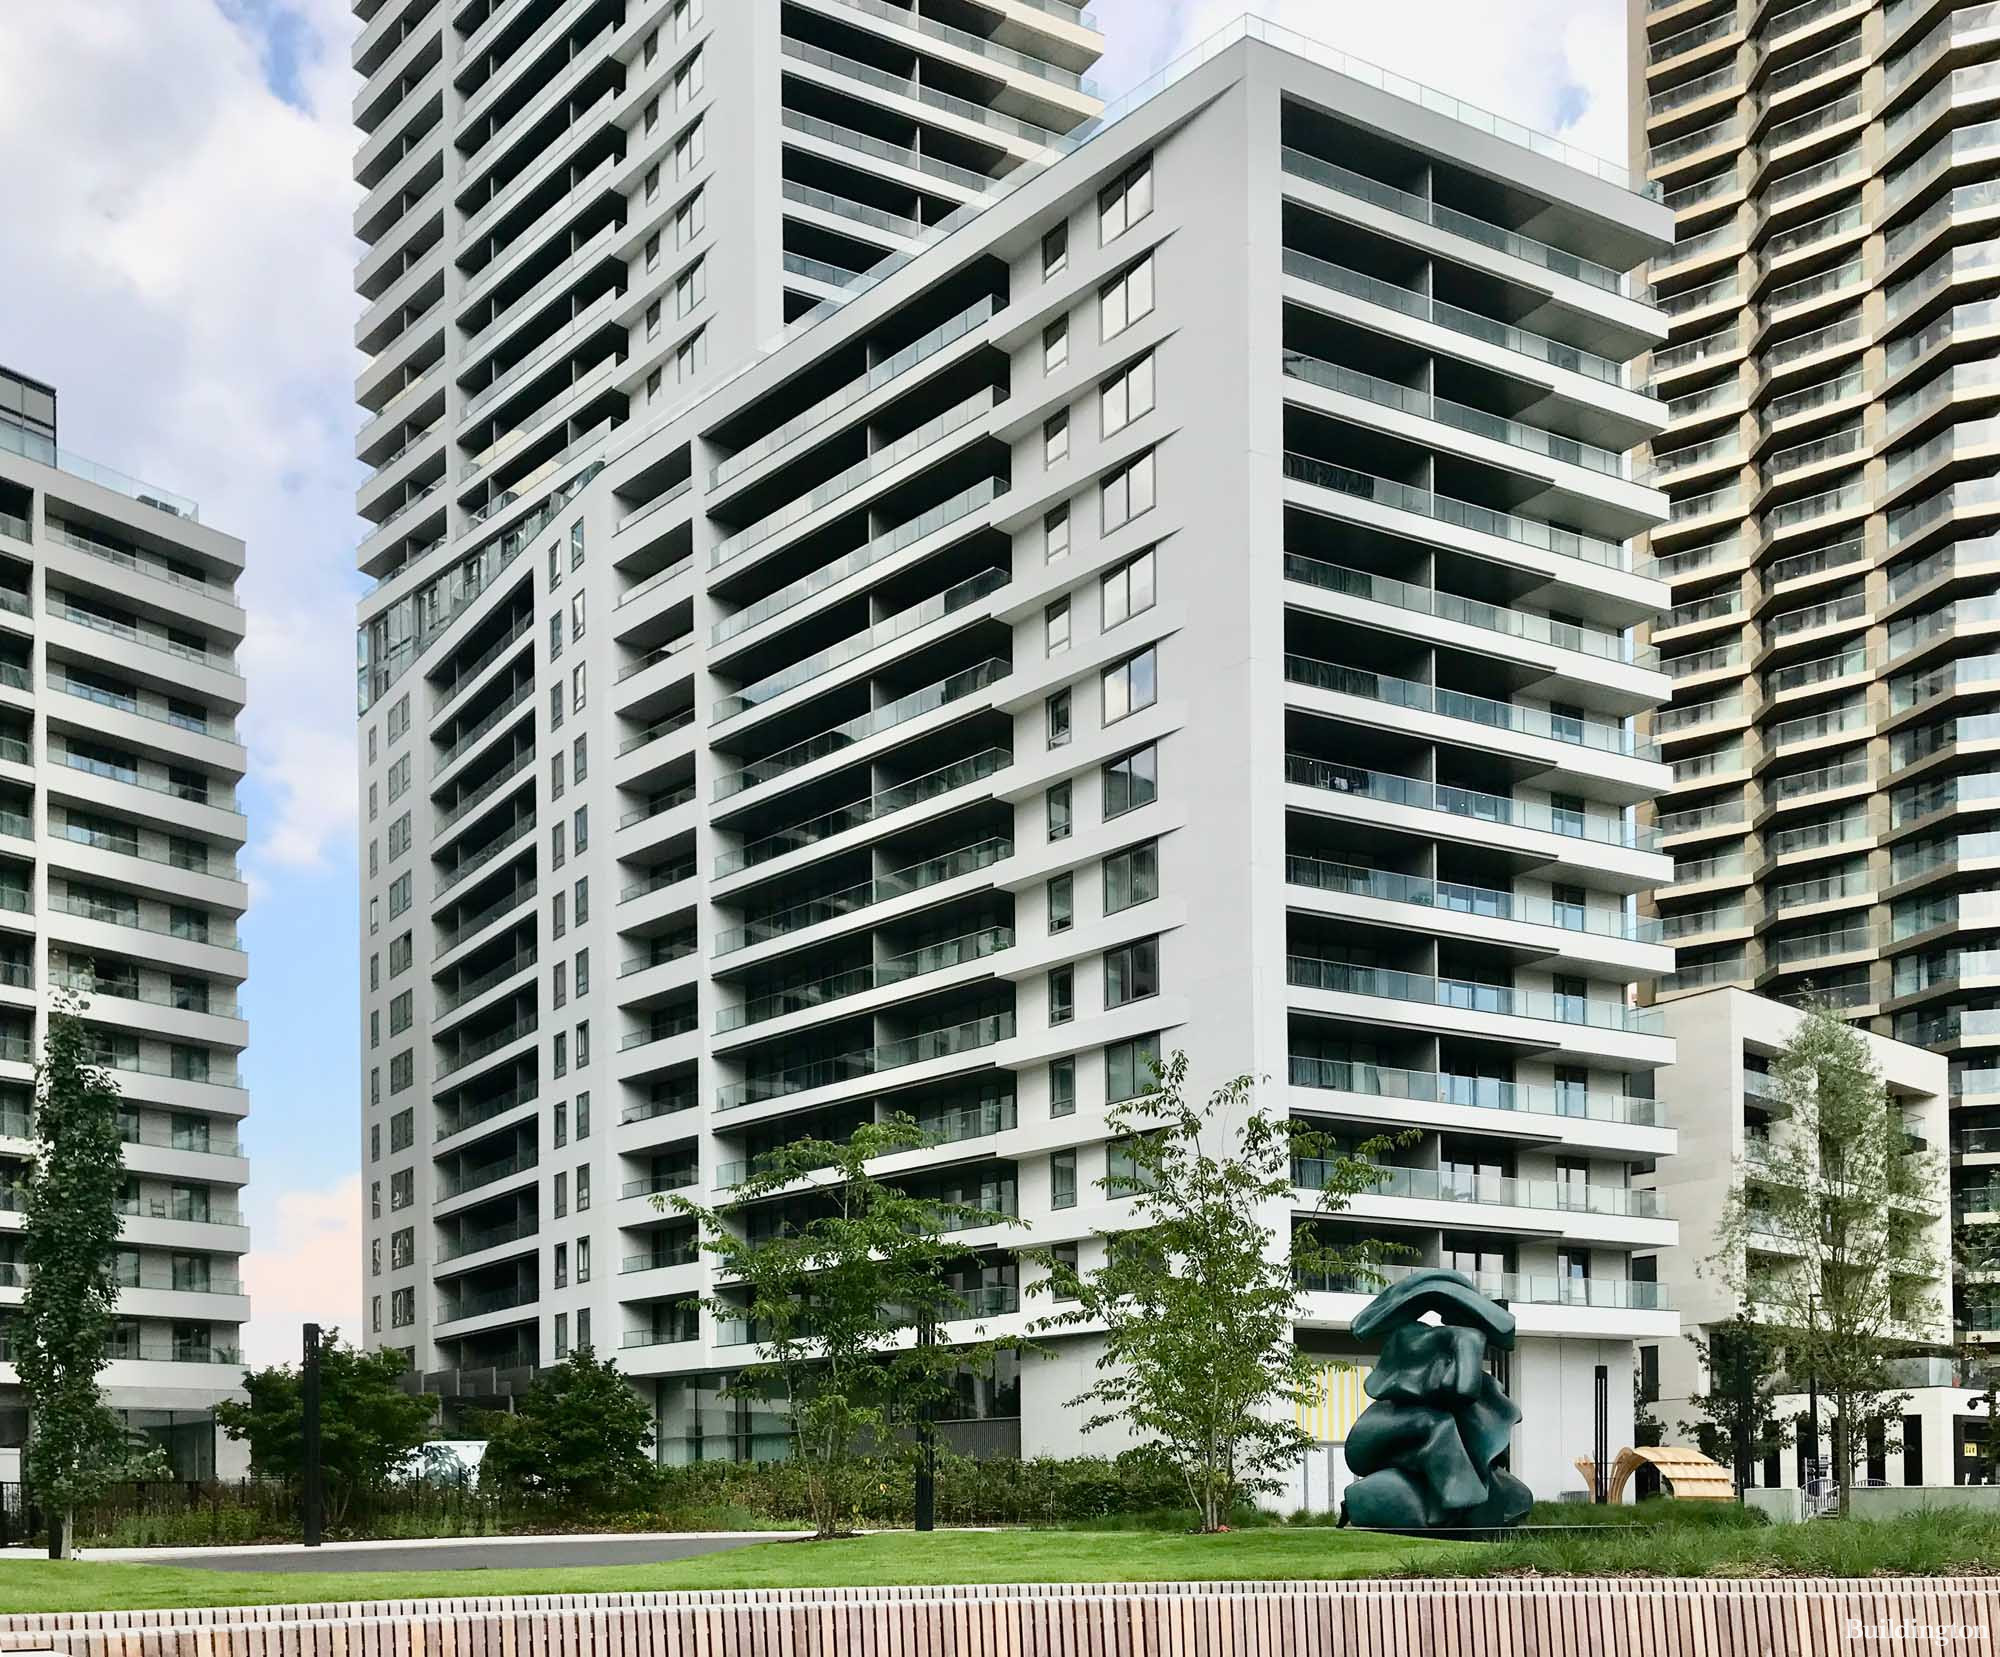 10 Park Drive apartments from South Dock promenade.